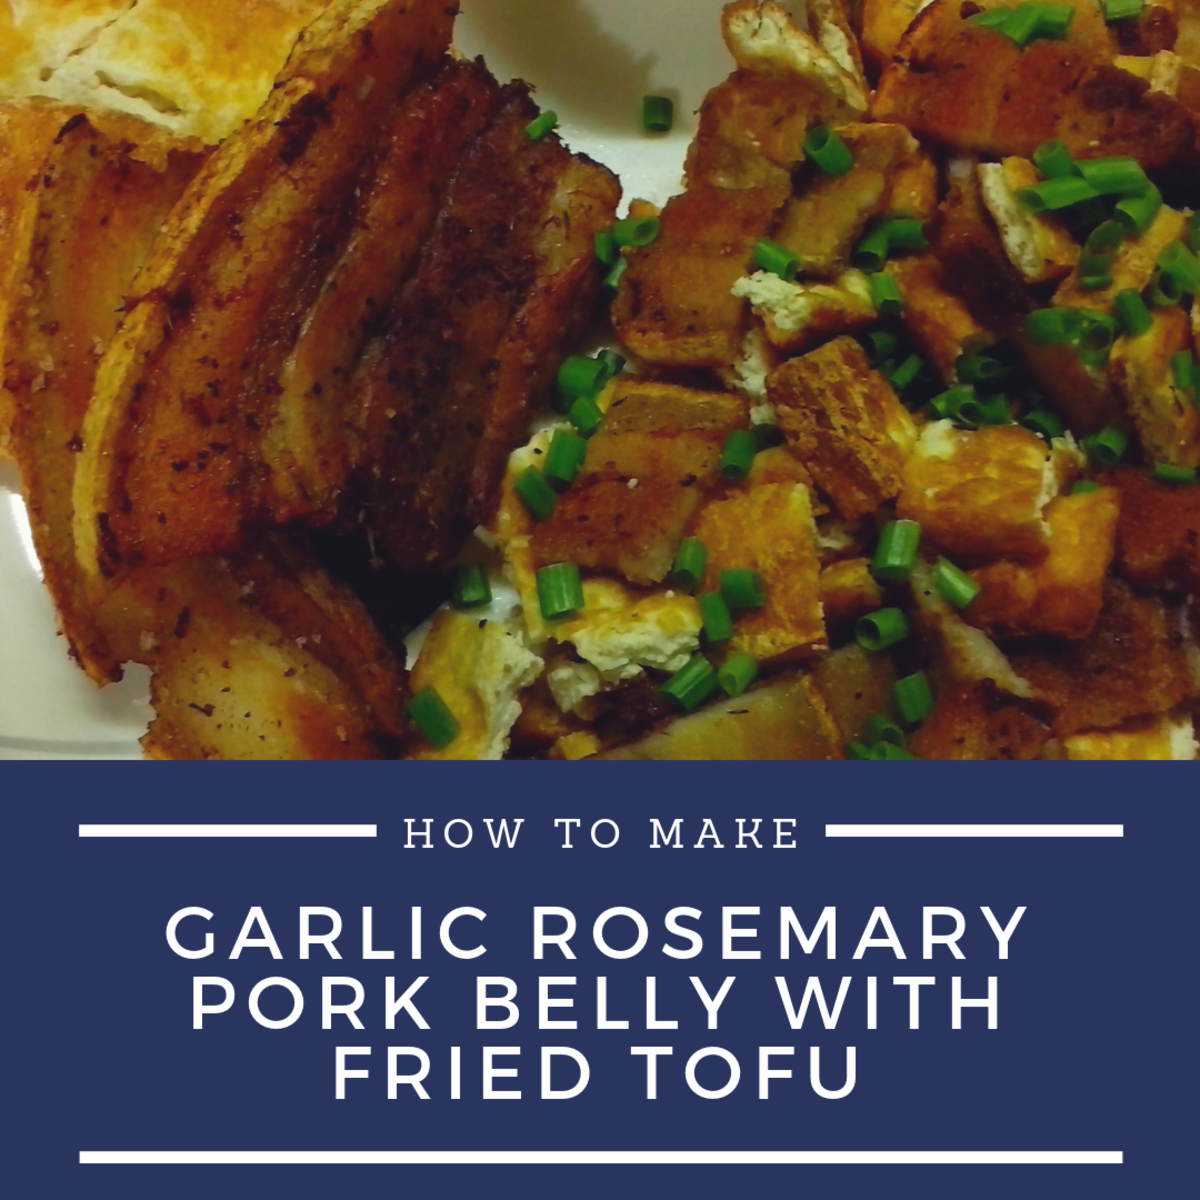 garlic rosemary pork belly with fried tofu